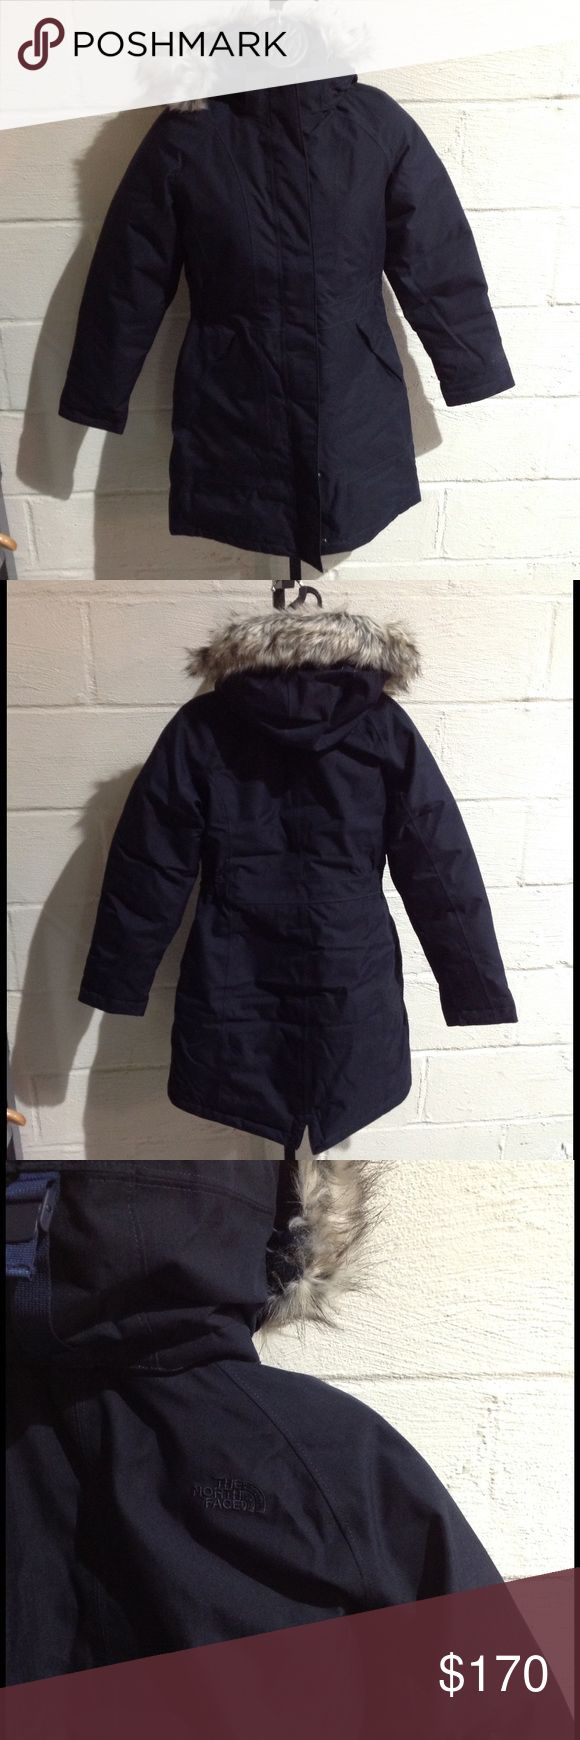 The North Face Women's Arctic Down Parka This parka is stylish and warm! Waterproof, insulated, 550-fill goose down and full zip with hood! (PM-W0280) North Face Jackets & Coats